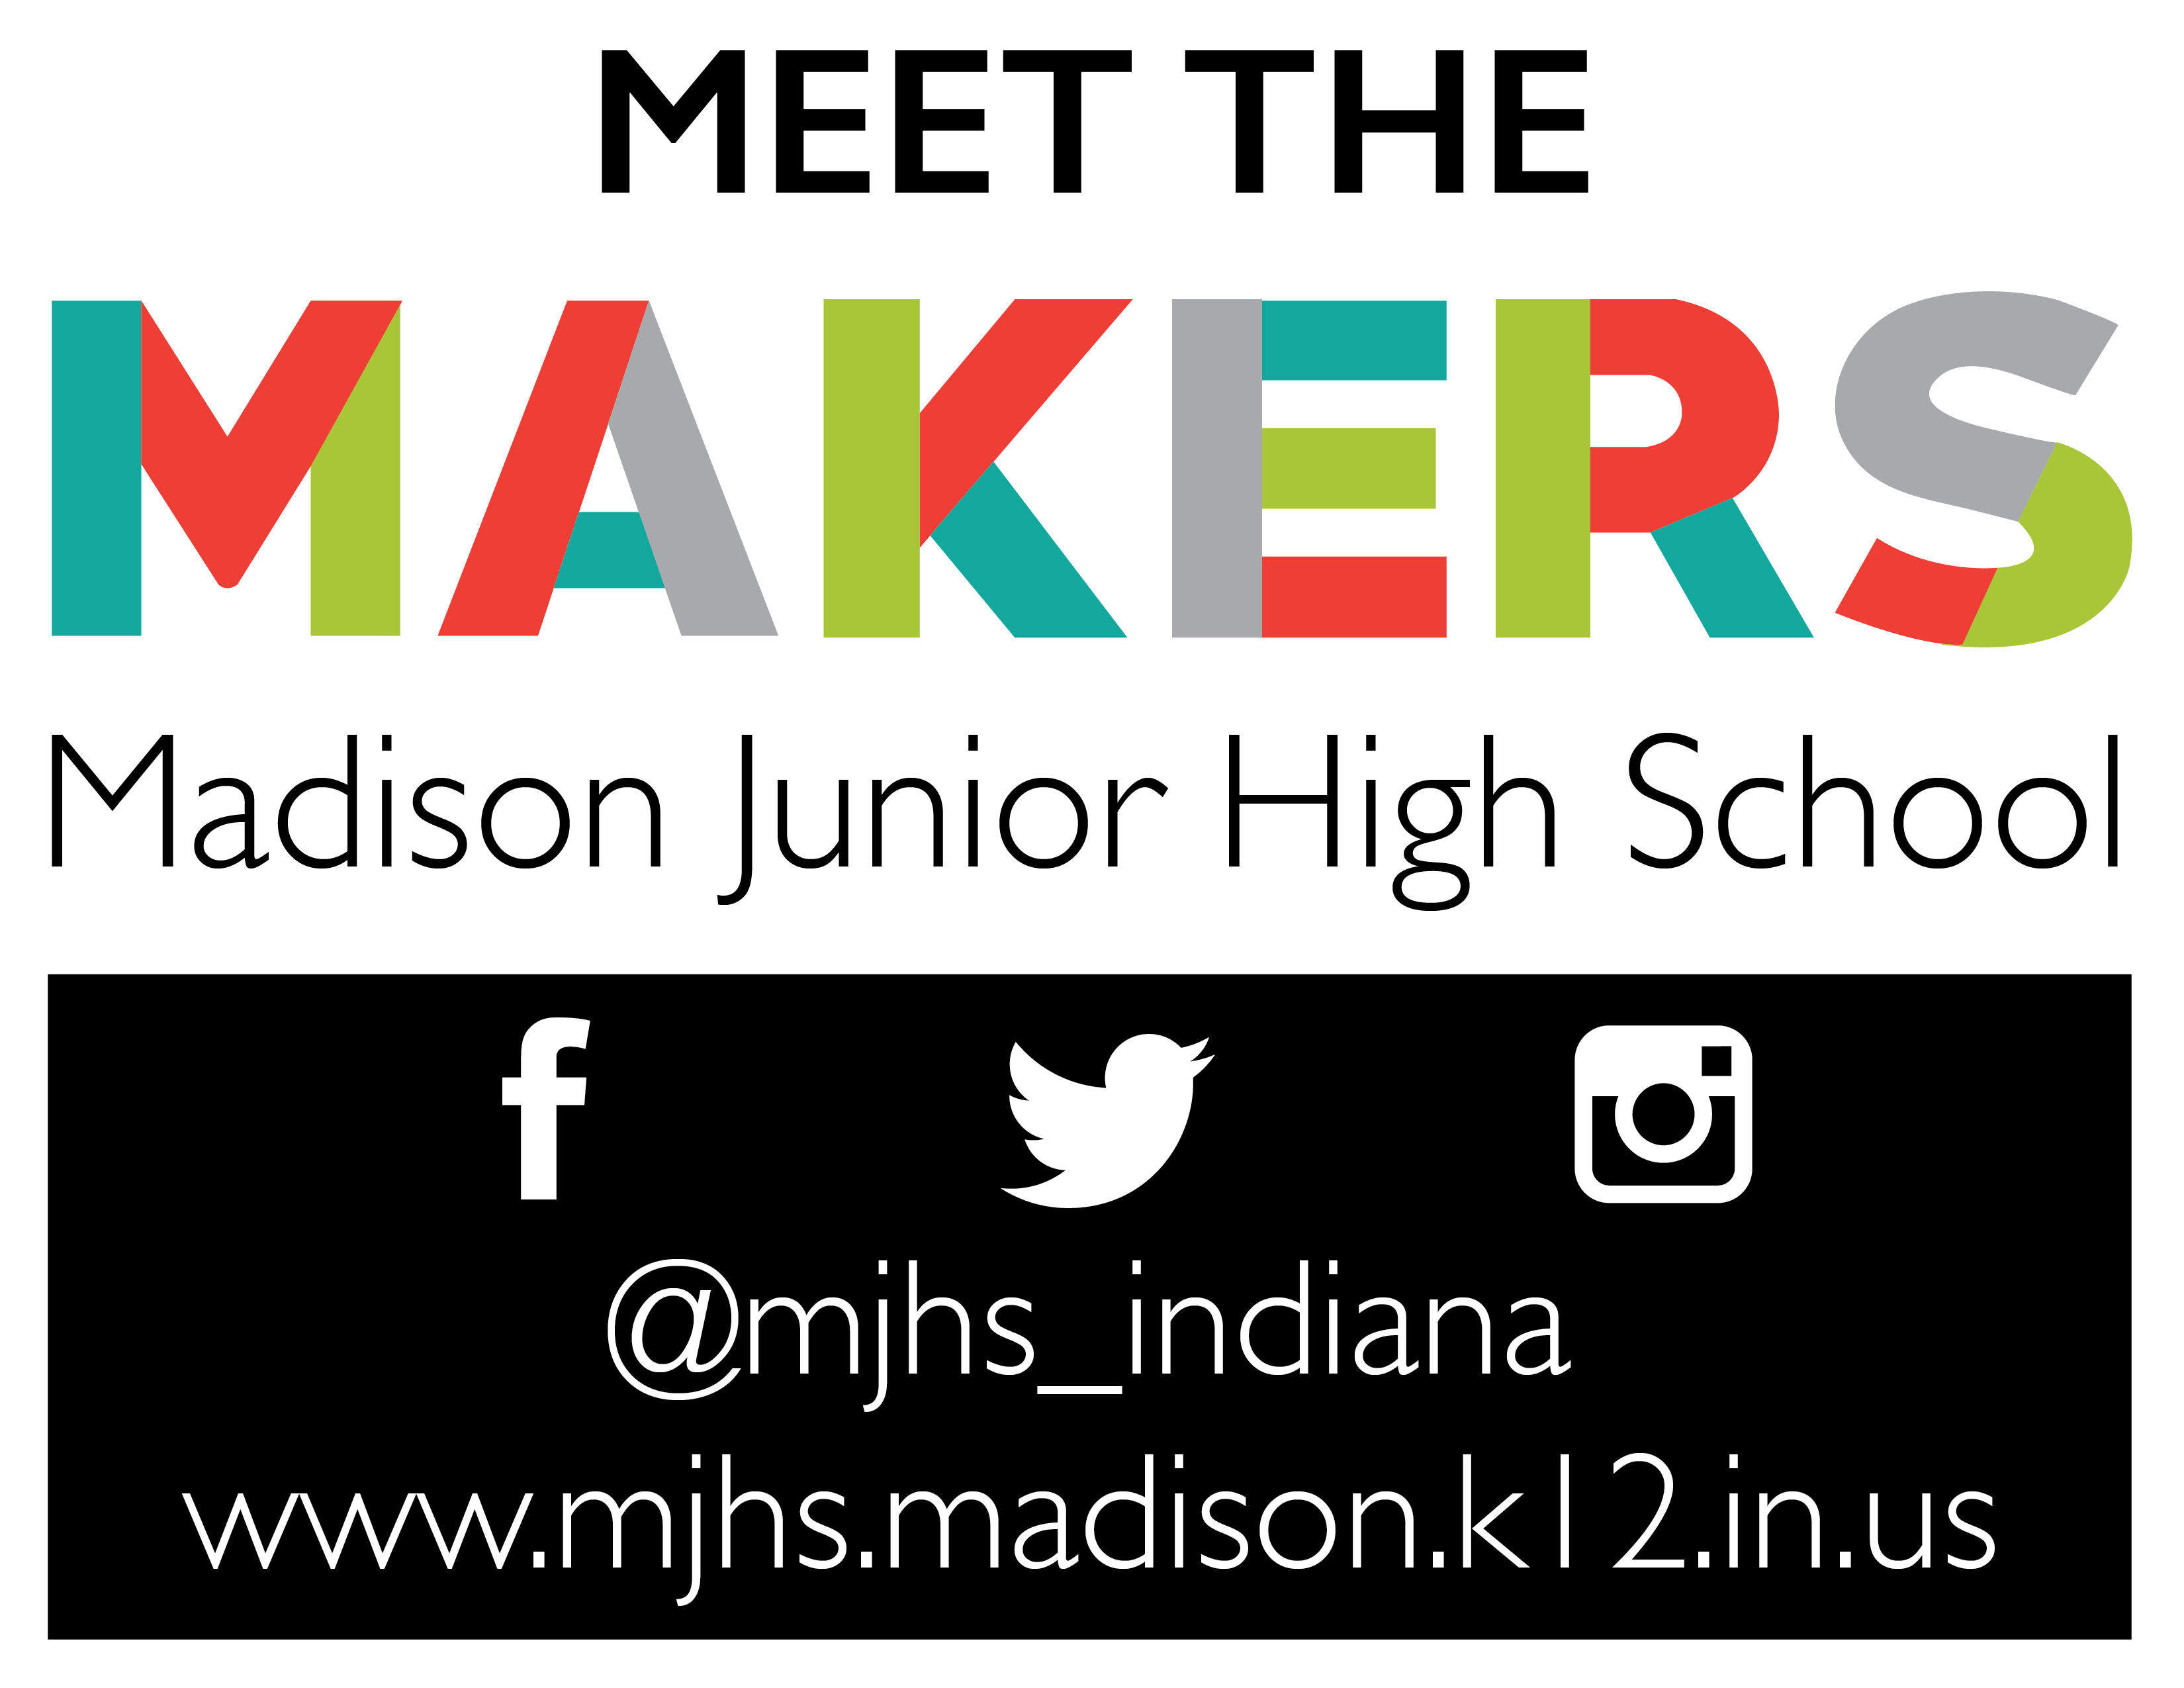 Meet the Makers Signage 01